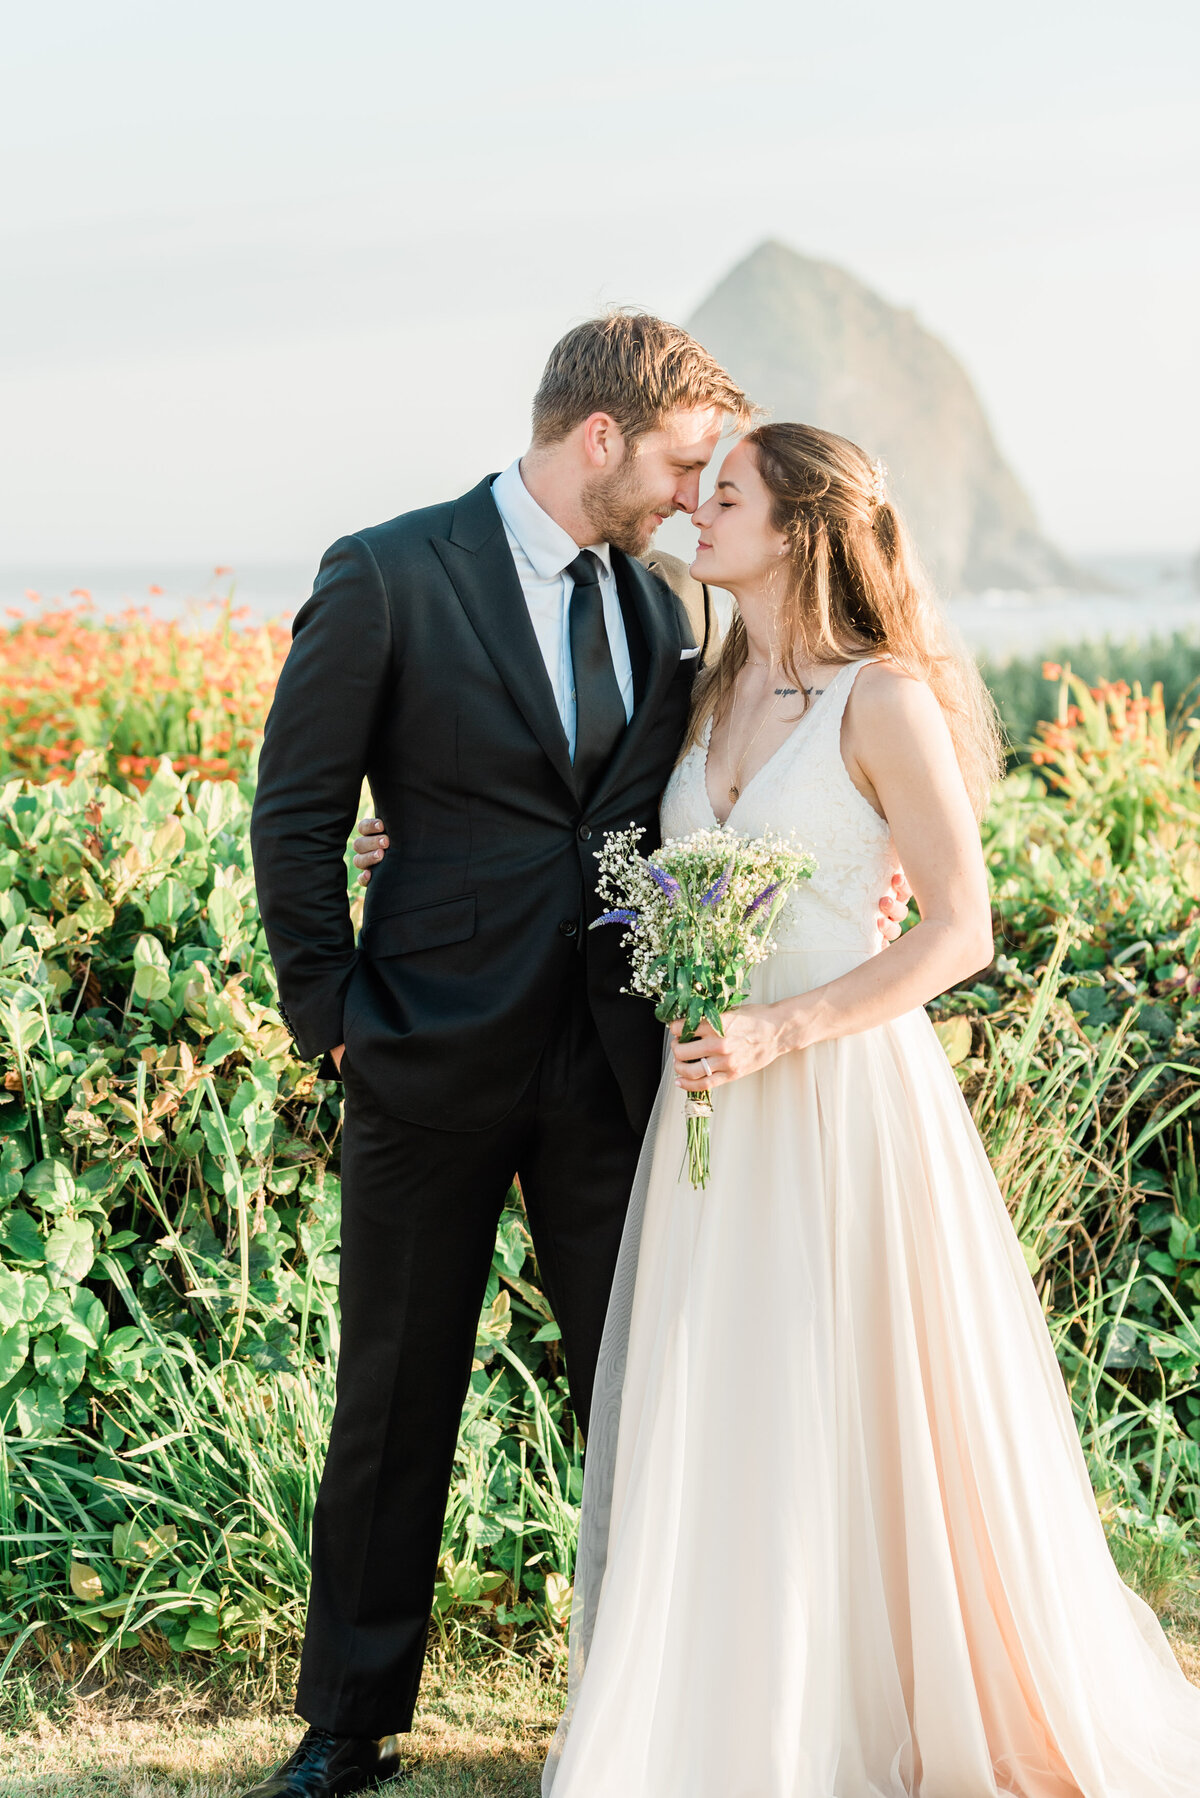 Cannon-Beach-Elopement-Photographer-33